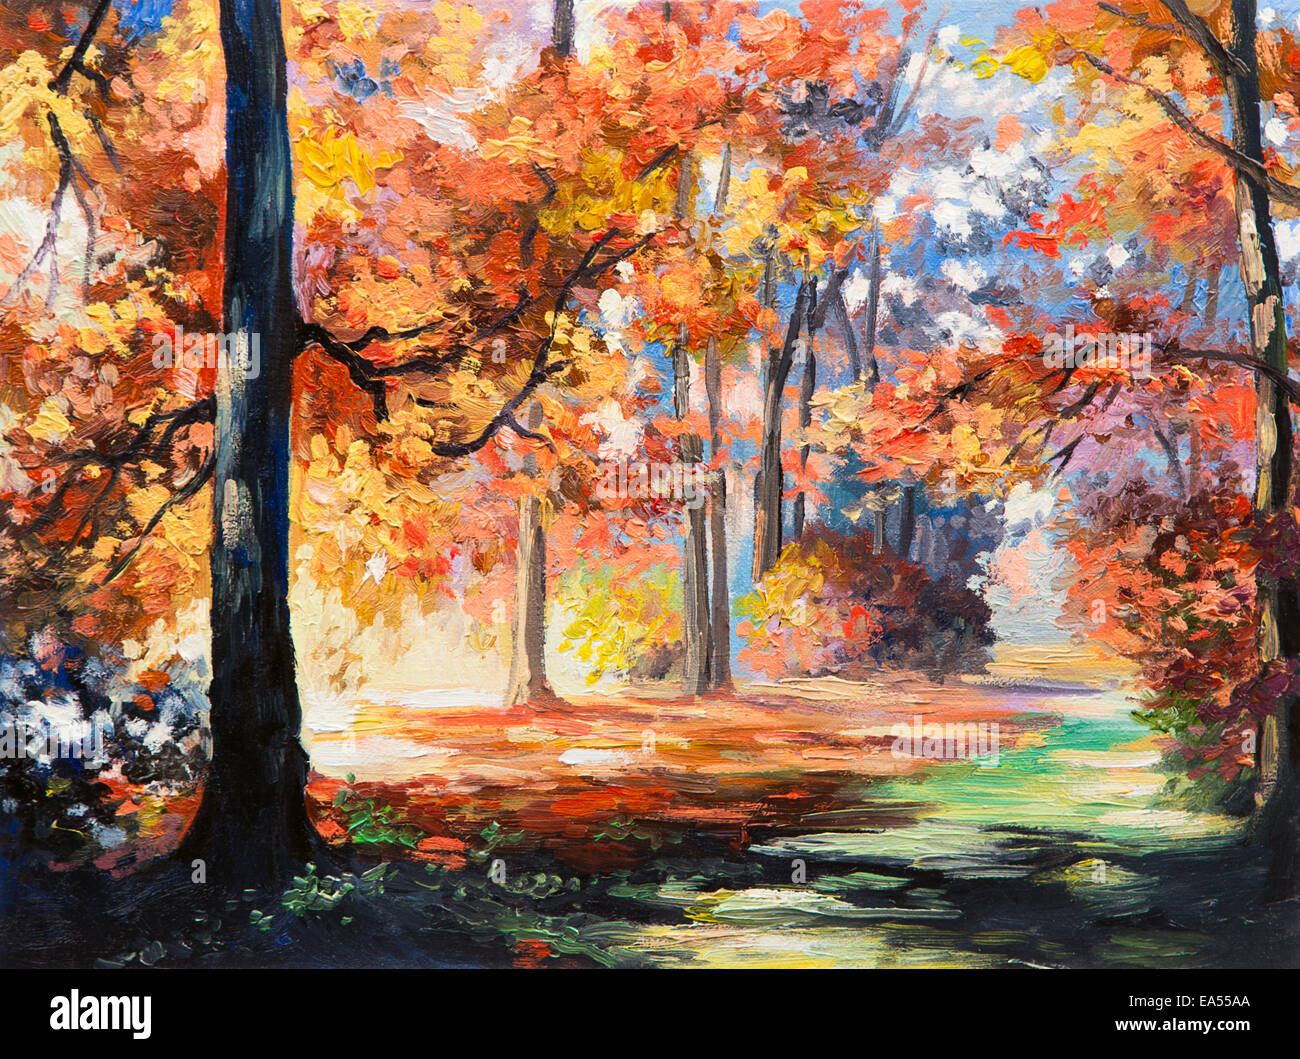 Leaf image brown wooden bridge in forest painting image nature,. Oil Painting Landscape Colorful Autumn Forest Trail In The Forest Stock Photo Alamy